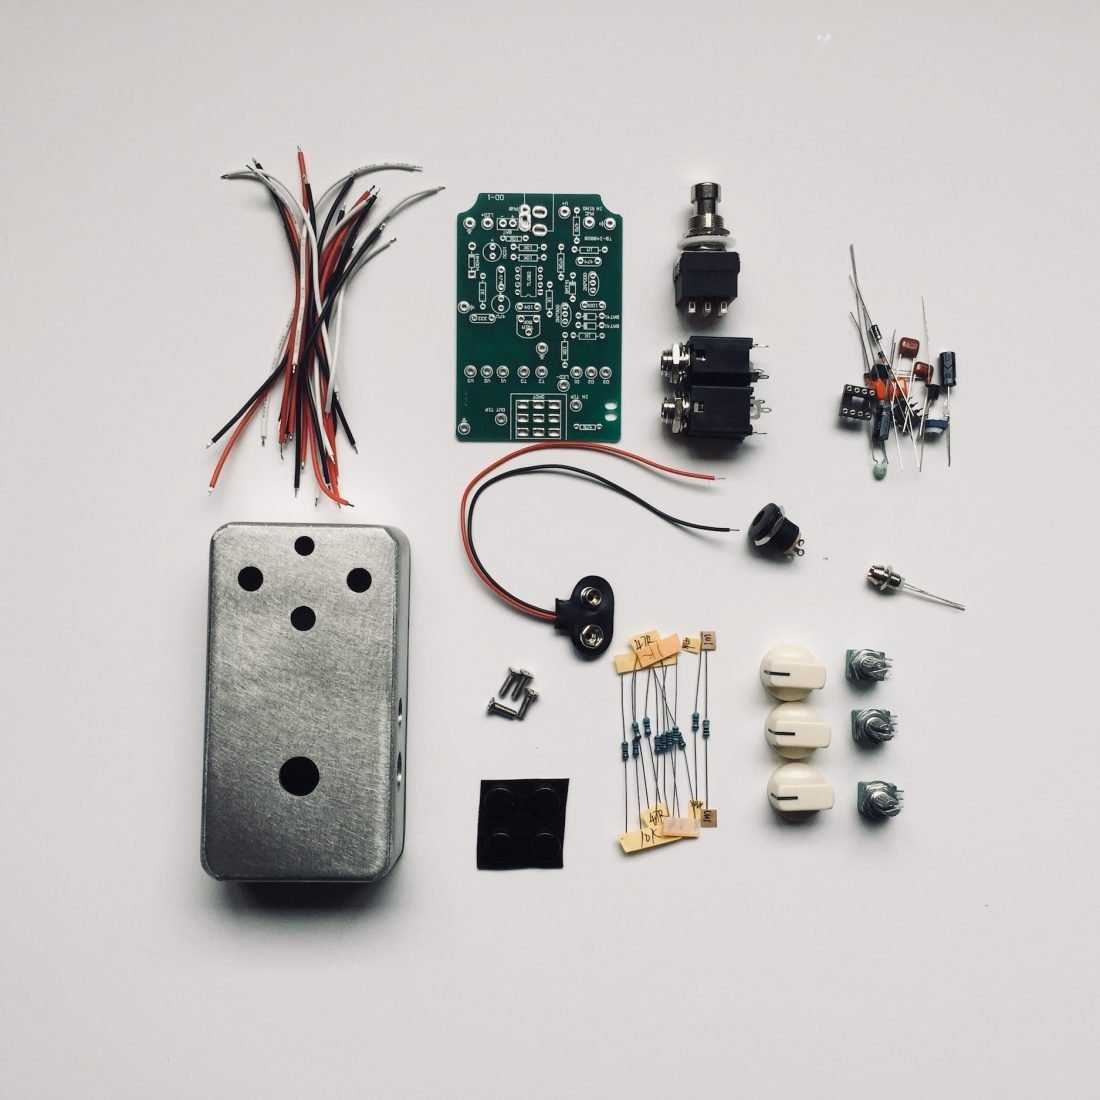 5 Diy Christmas Projects Guitarists Will Love Musician Tuts Make Guitar Wiring Basics Pedal Kit